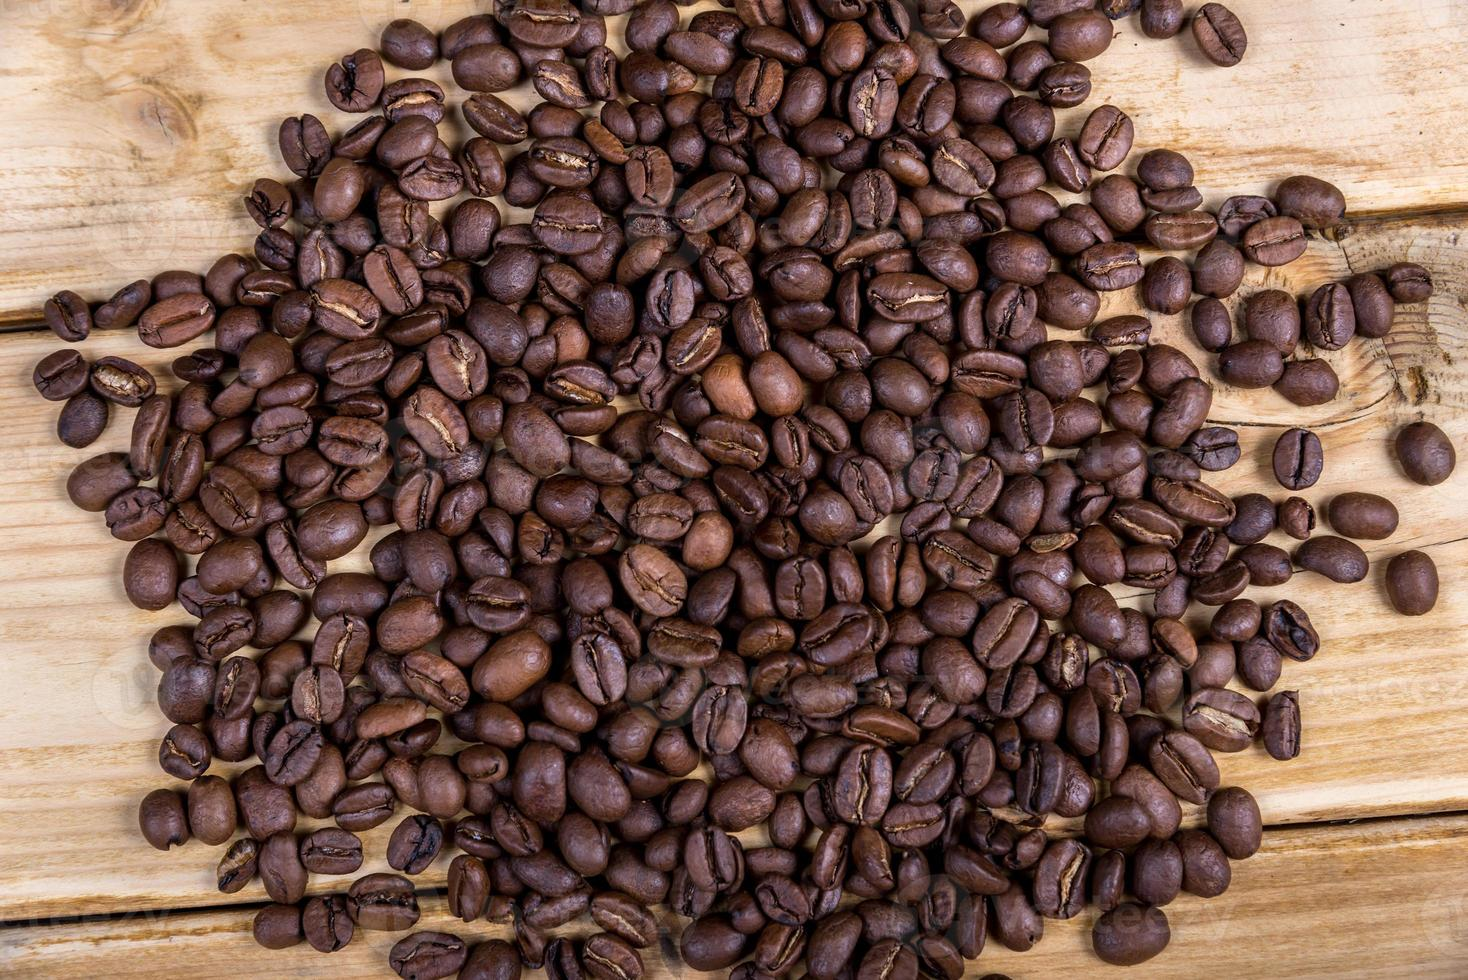 Coffee beans on the wooden table photo